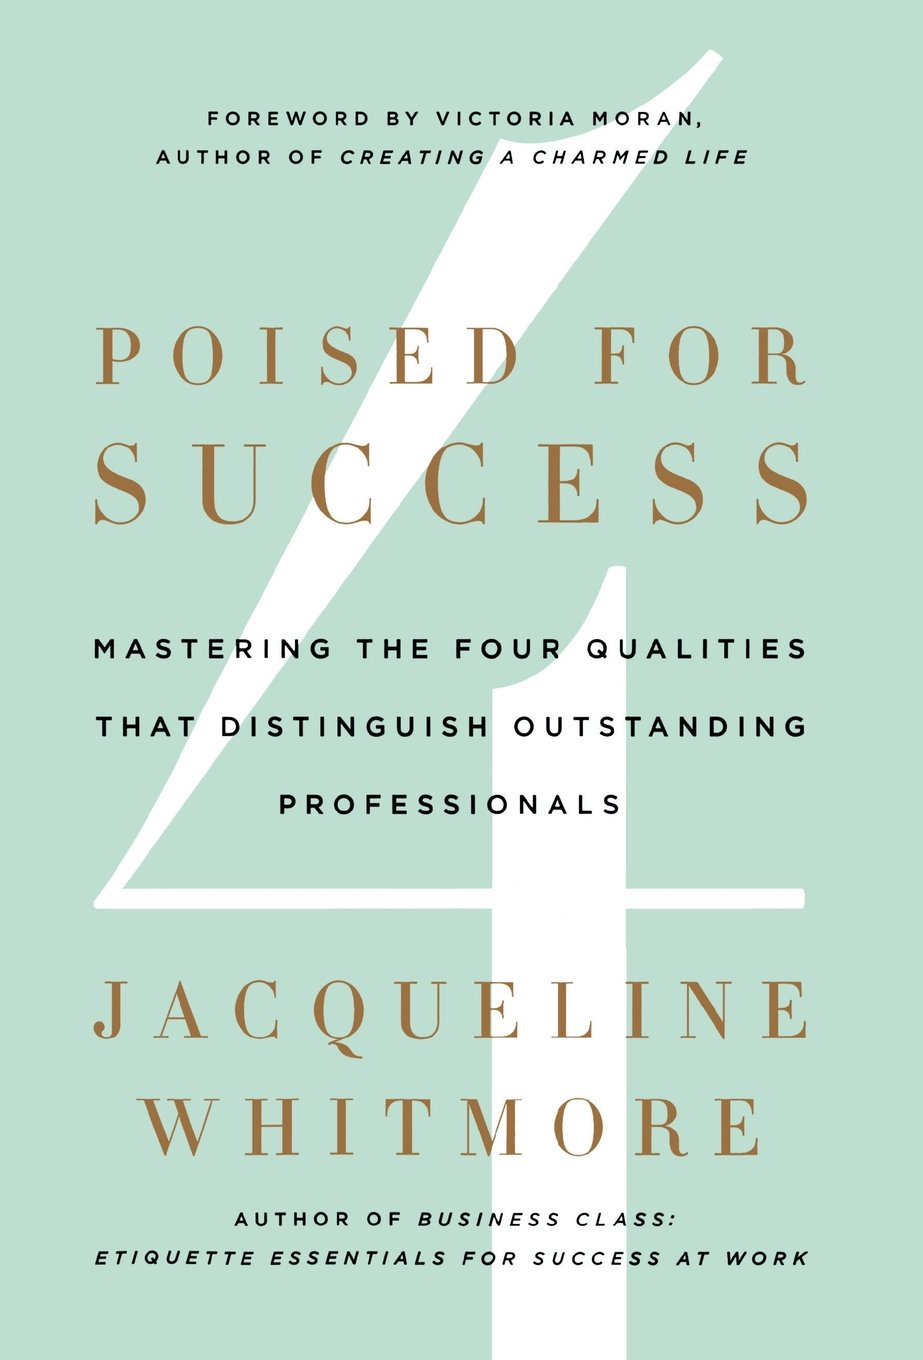 Poised Success Distinguish Outstanding Professionals product image